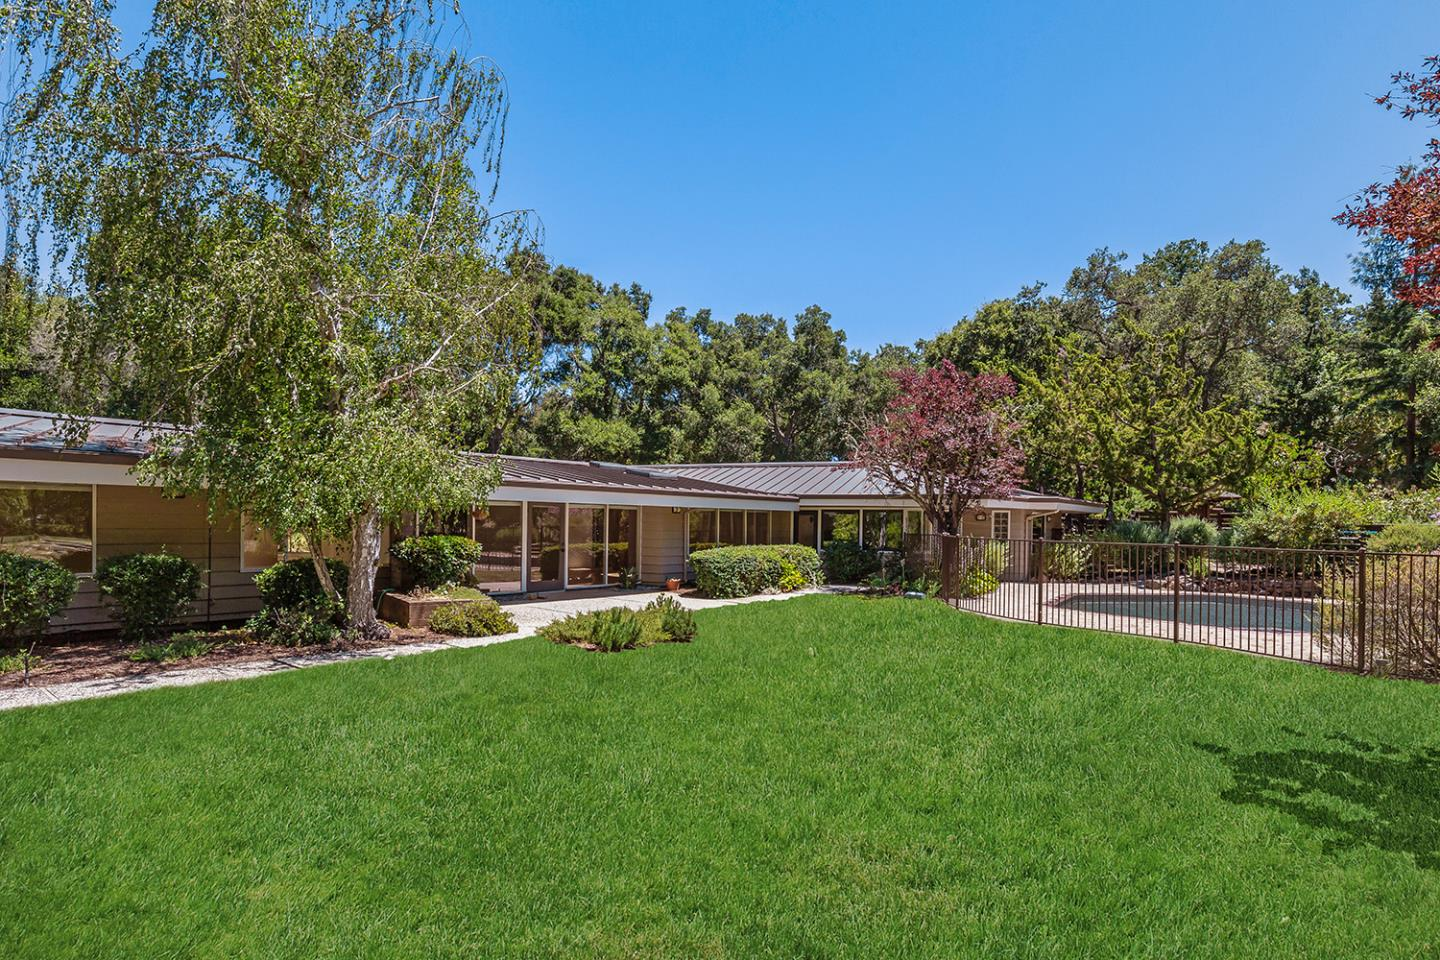 229 GROVE DR, PORTOLA VALLEY, CA 94028